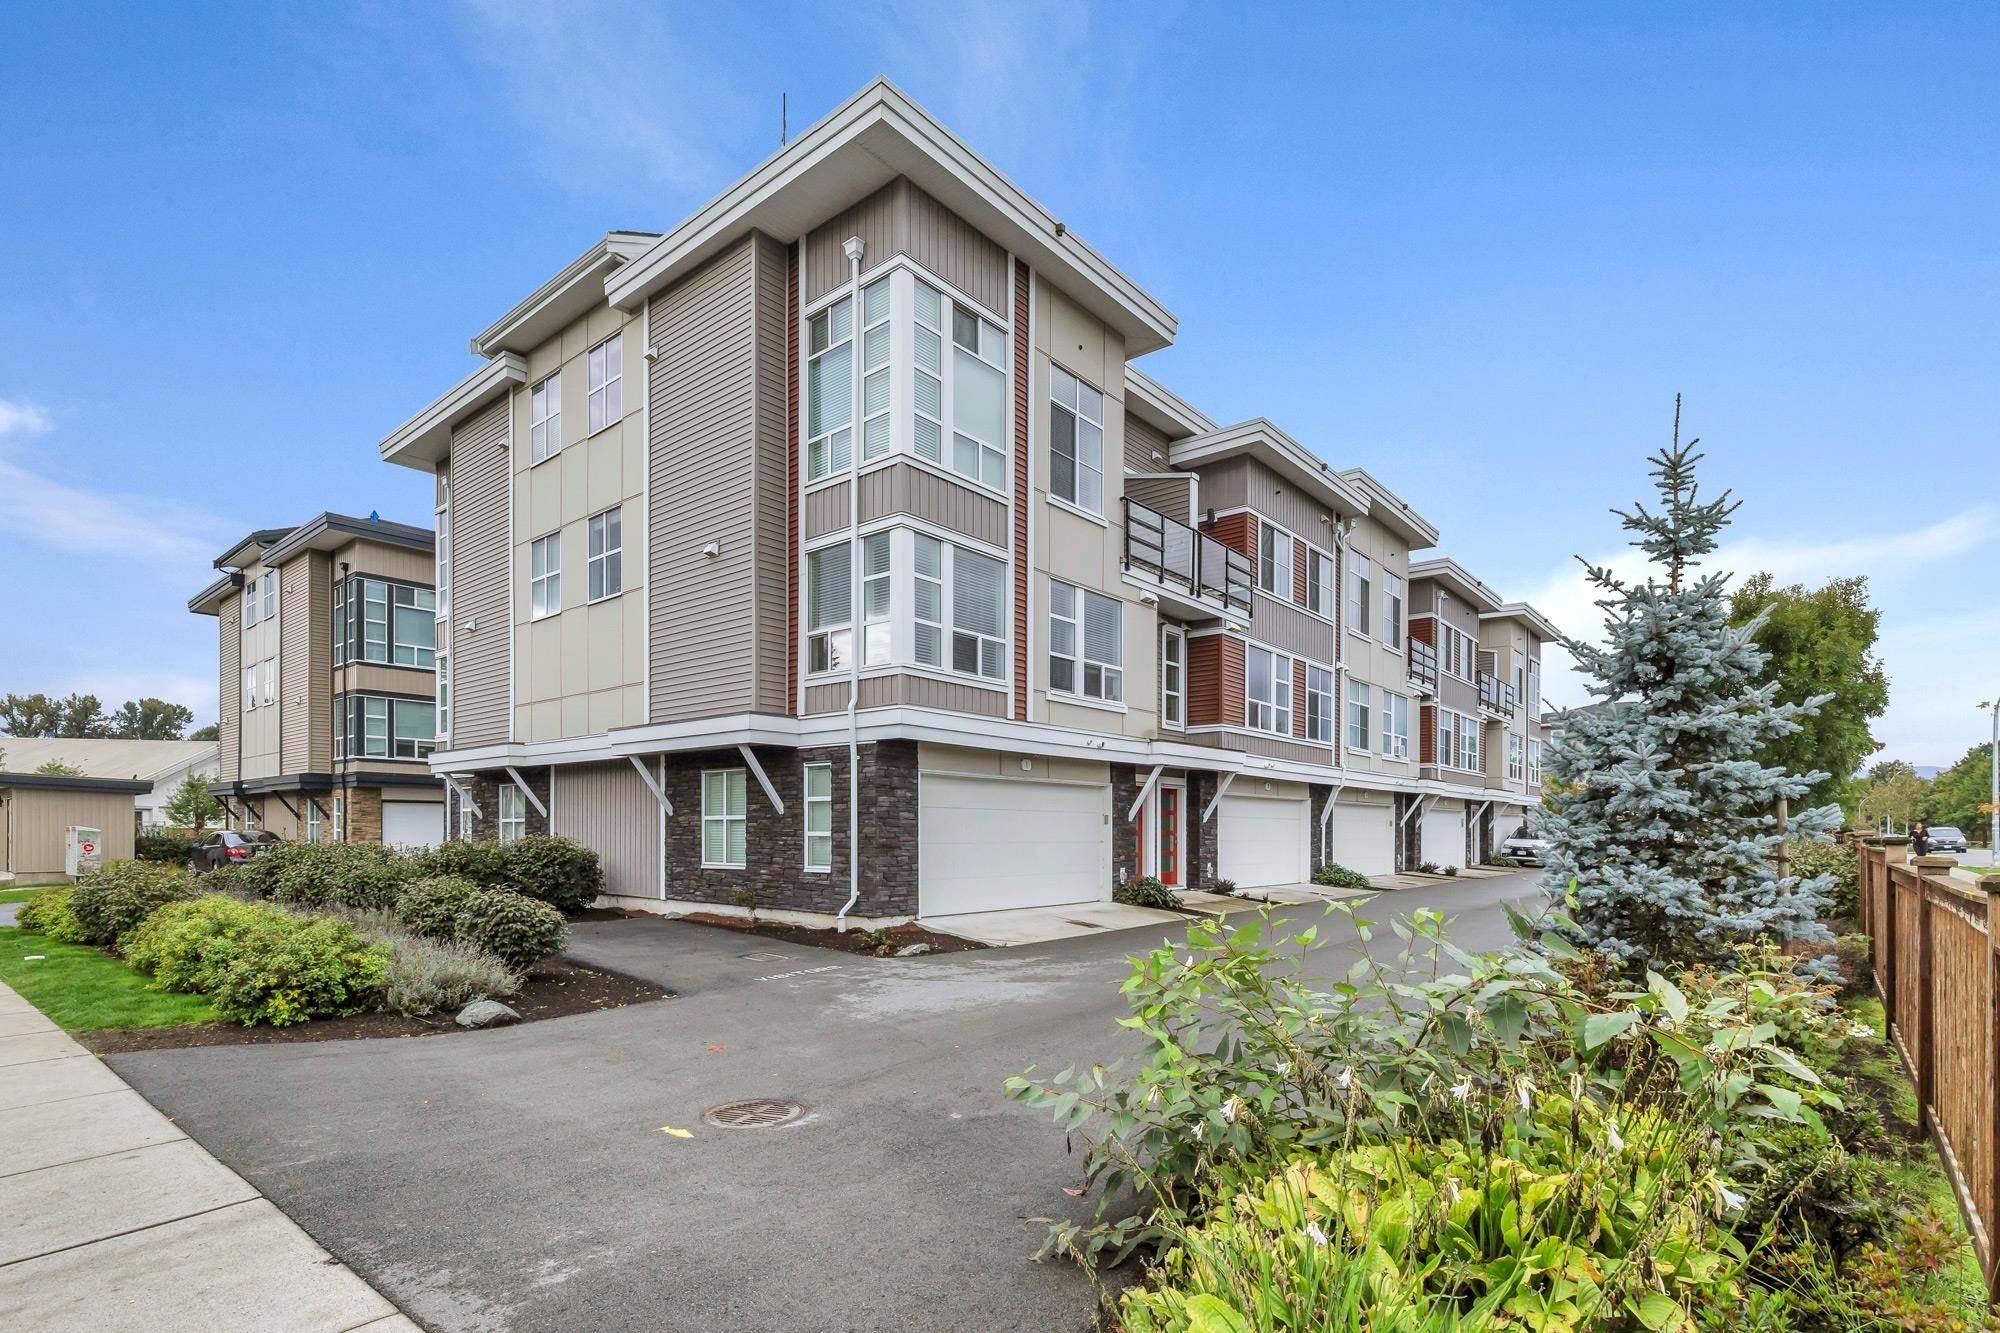 """Main Photo: 2 8466 MIDTOWN Way in Chilliwack: Chilliwack W Young-Well Townhouse for sale in """"MIDTOWN II"""" : MLS®# R2621321"""